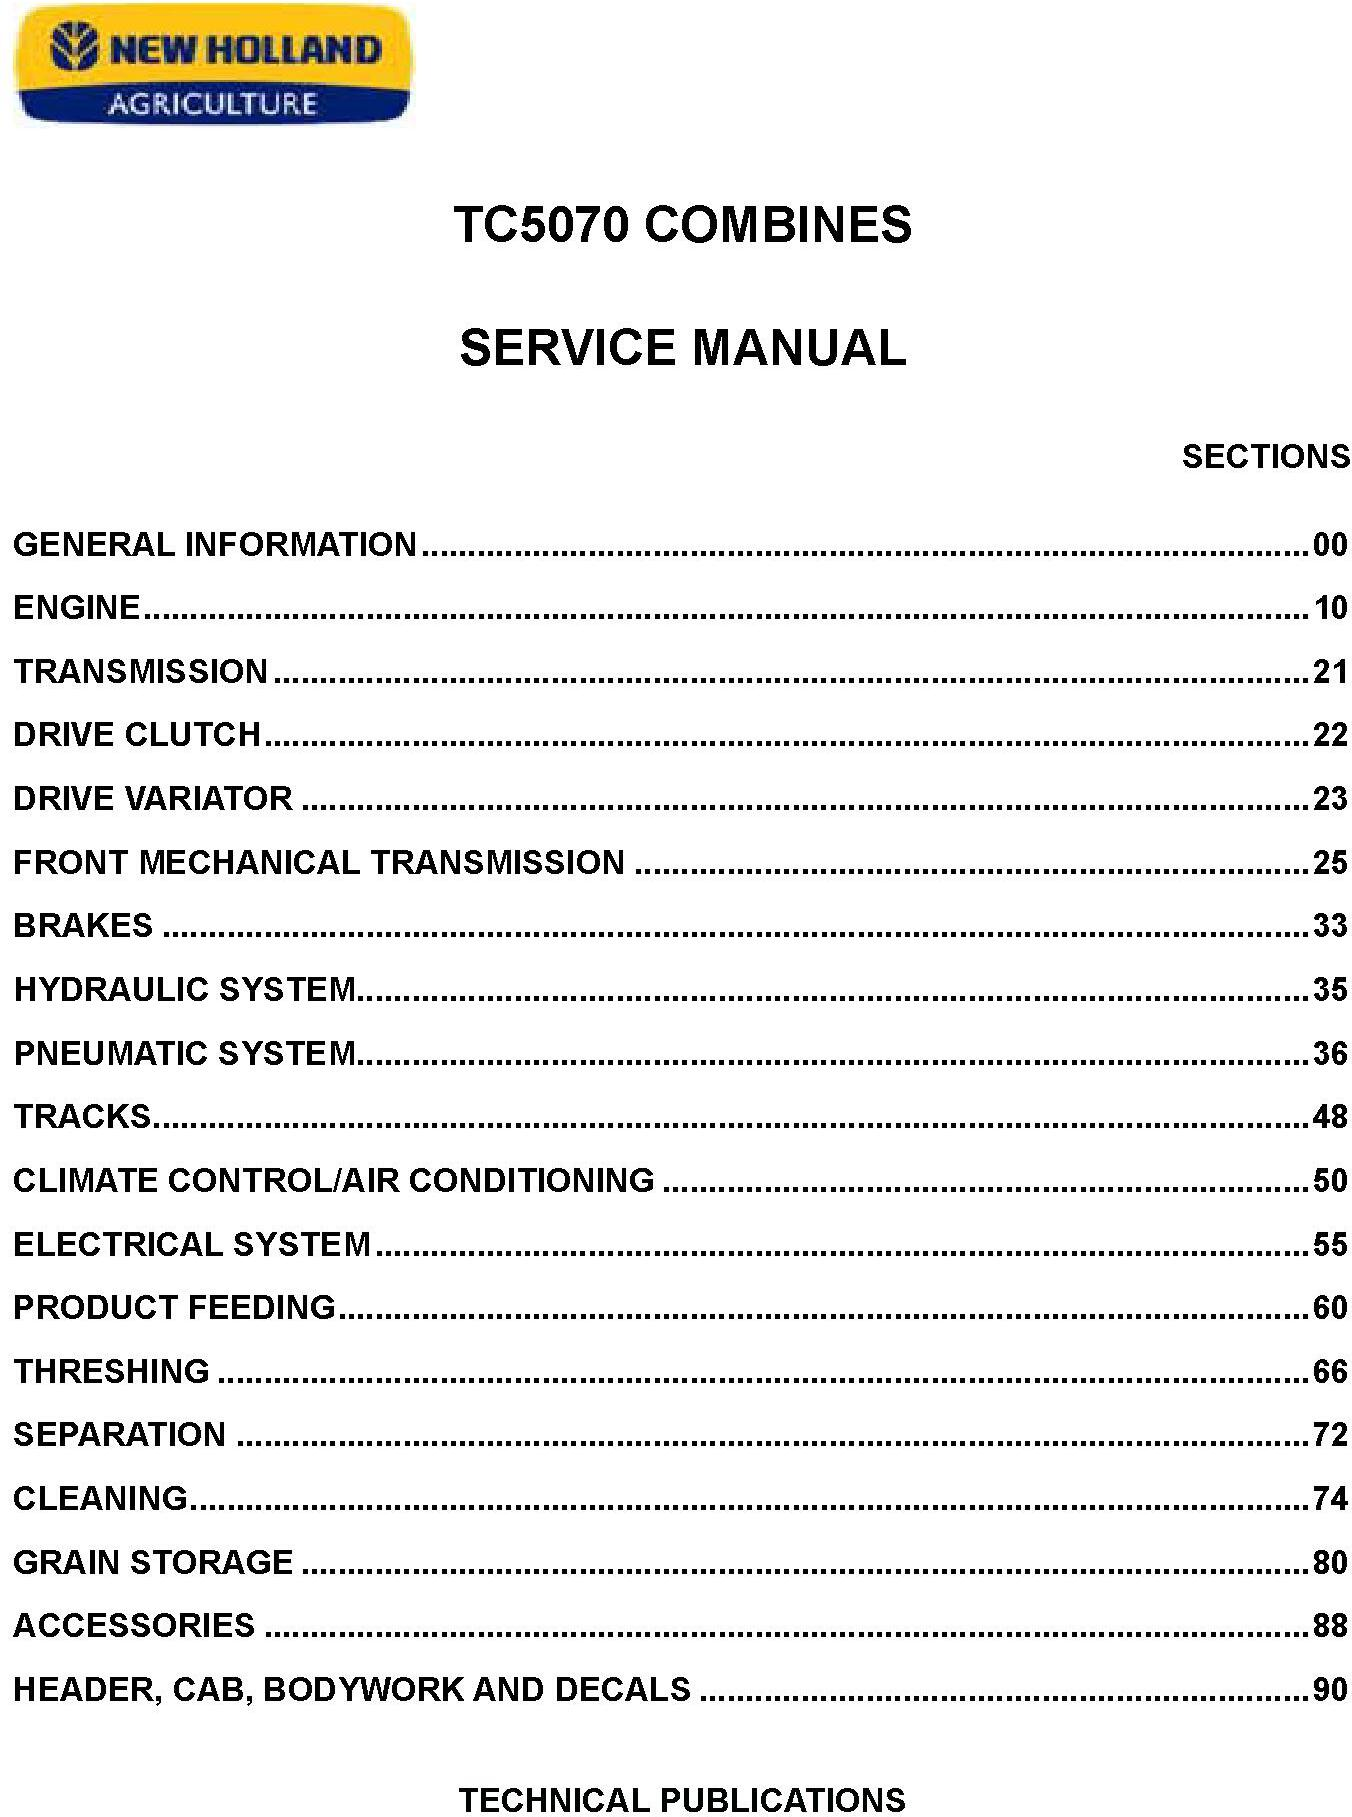 New Holland TC5070 Hydro 4WD Combine Service Manual - 20018